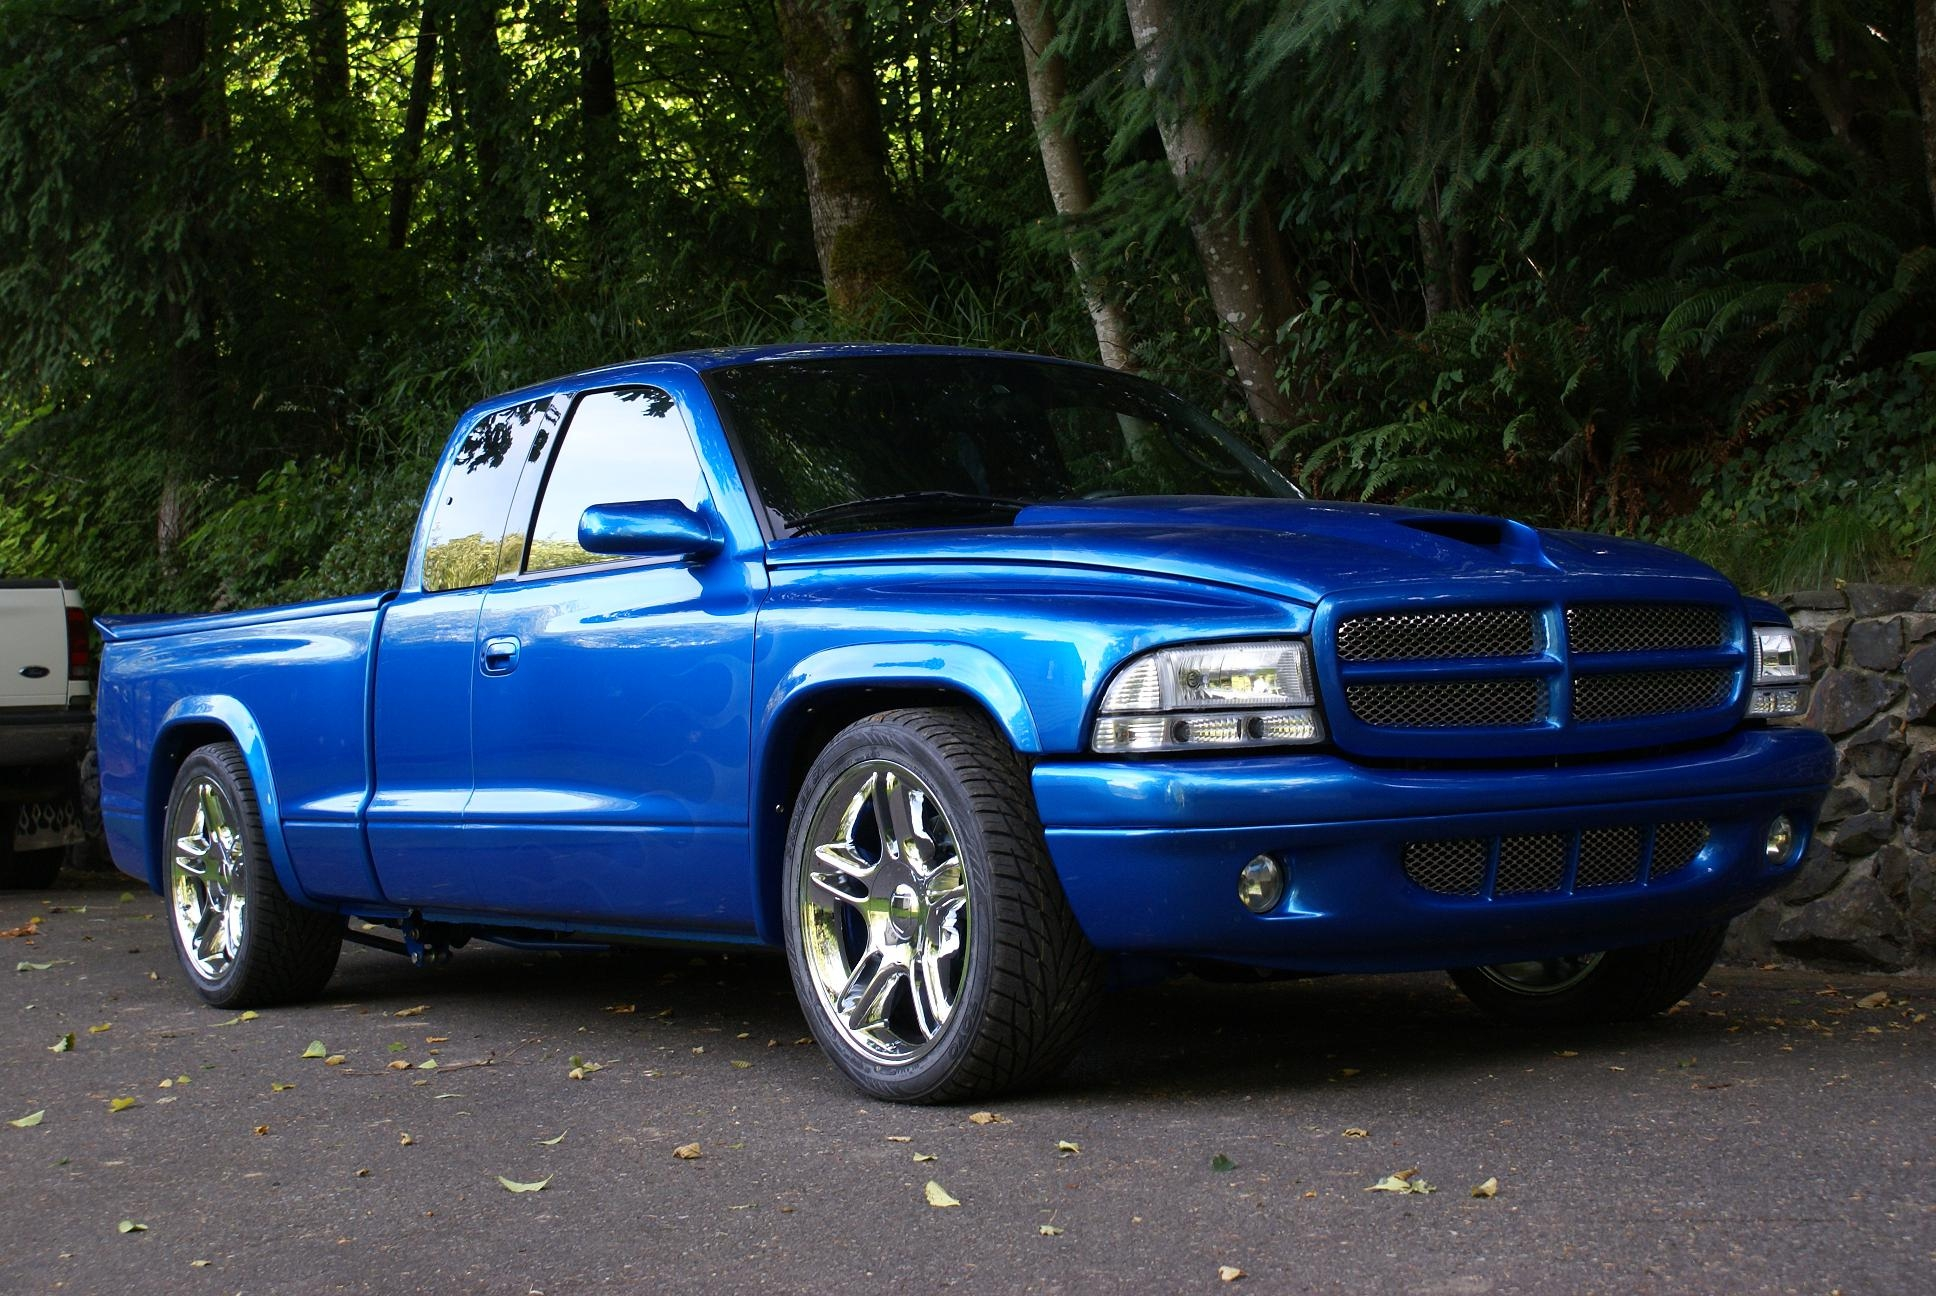 6speedrt 2015 dodge dakota-club-cabr/t specs, photos, modification